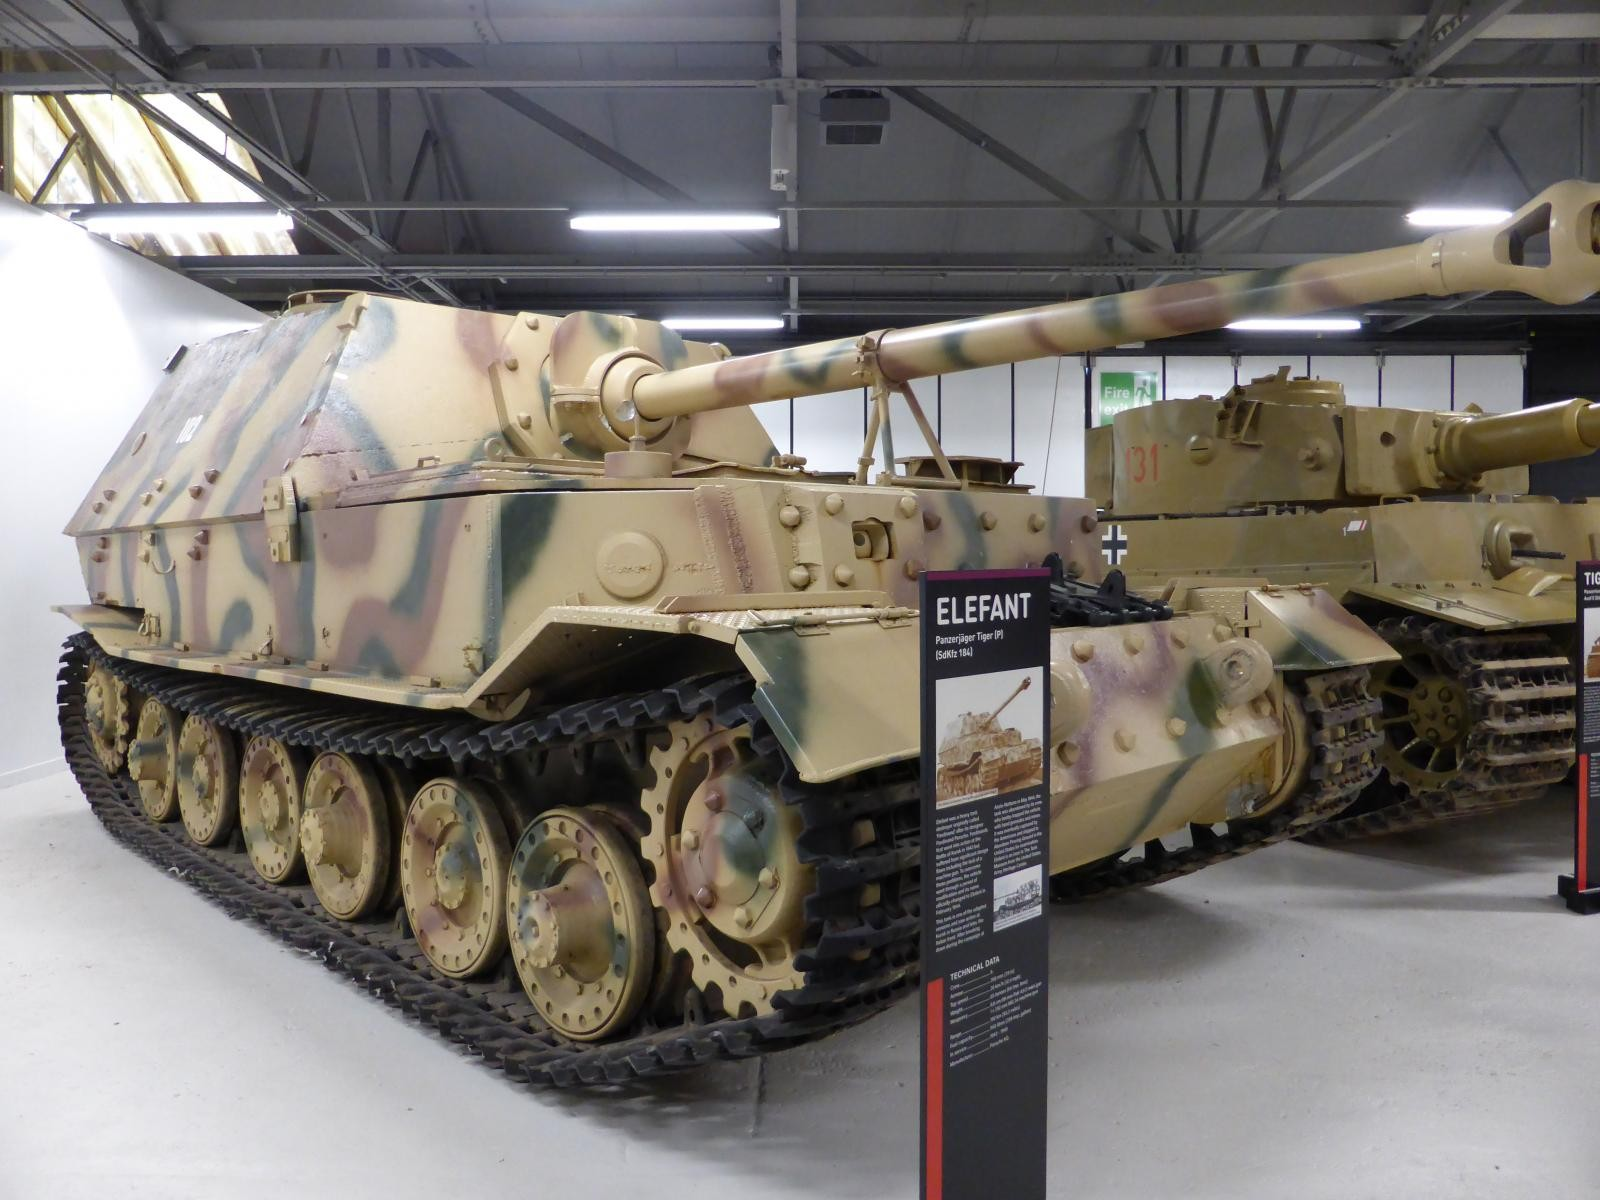 Tiger Tank Collection & Amp Fury Exhibit Imodeler